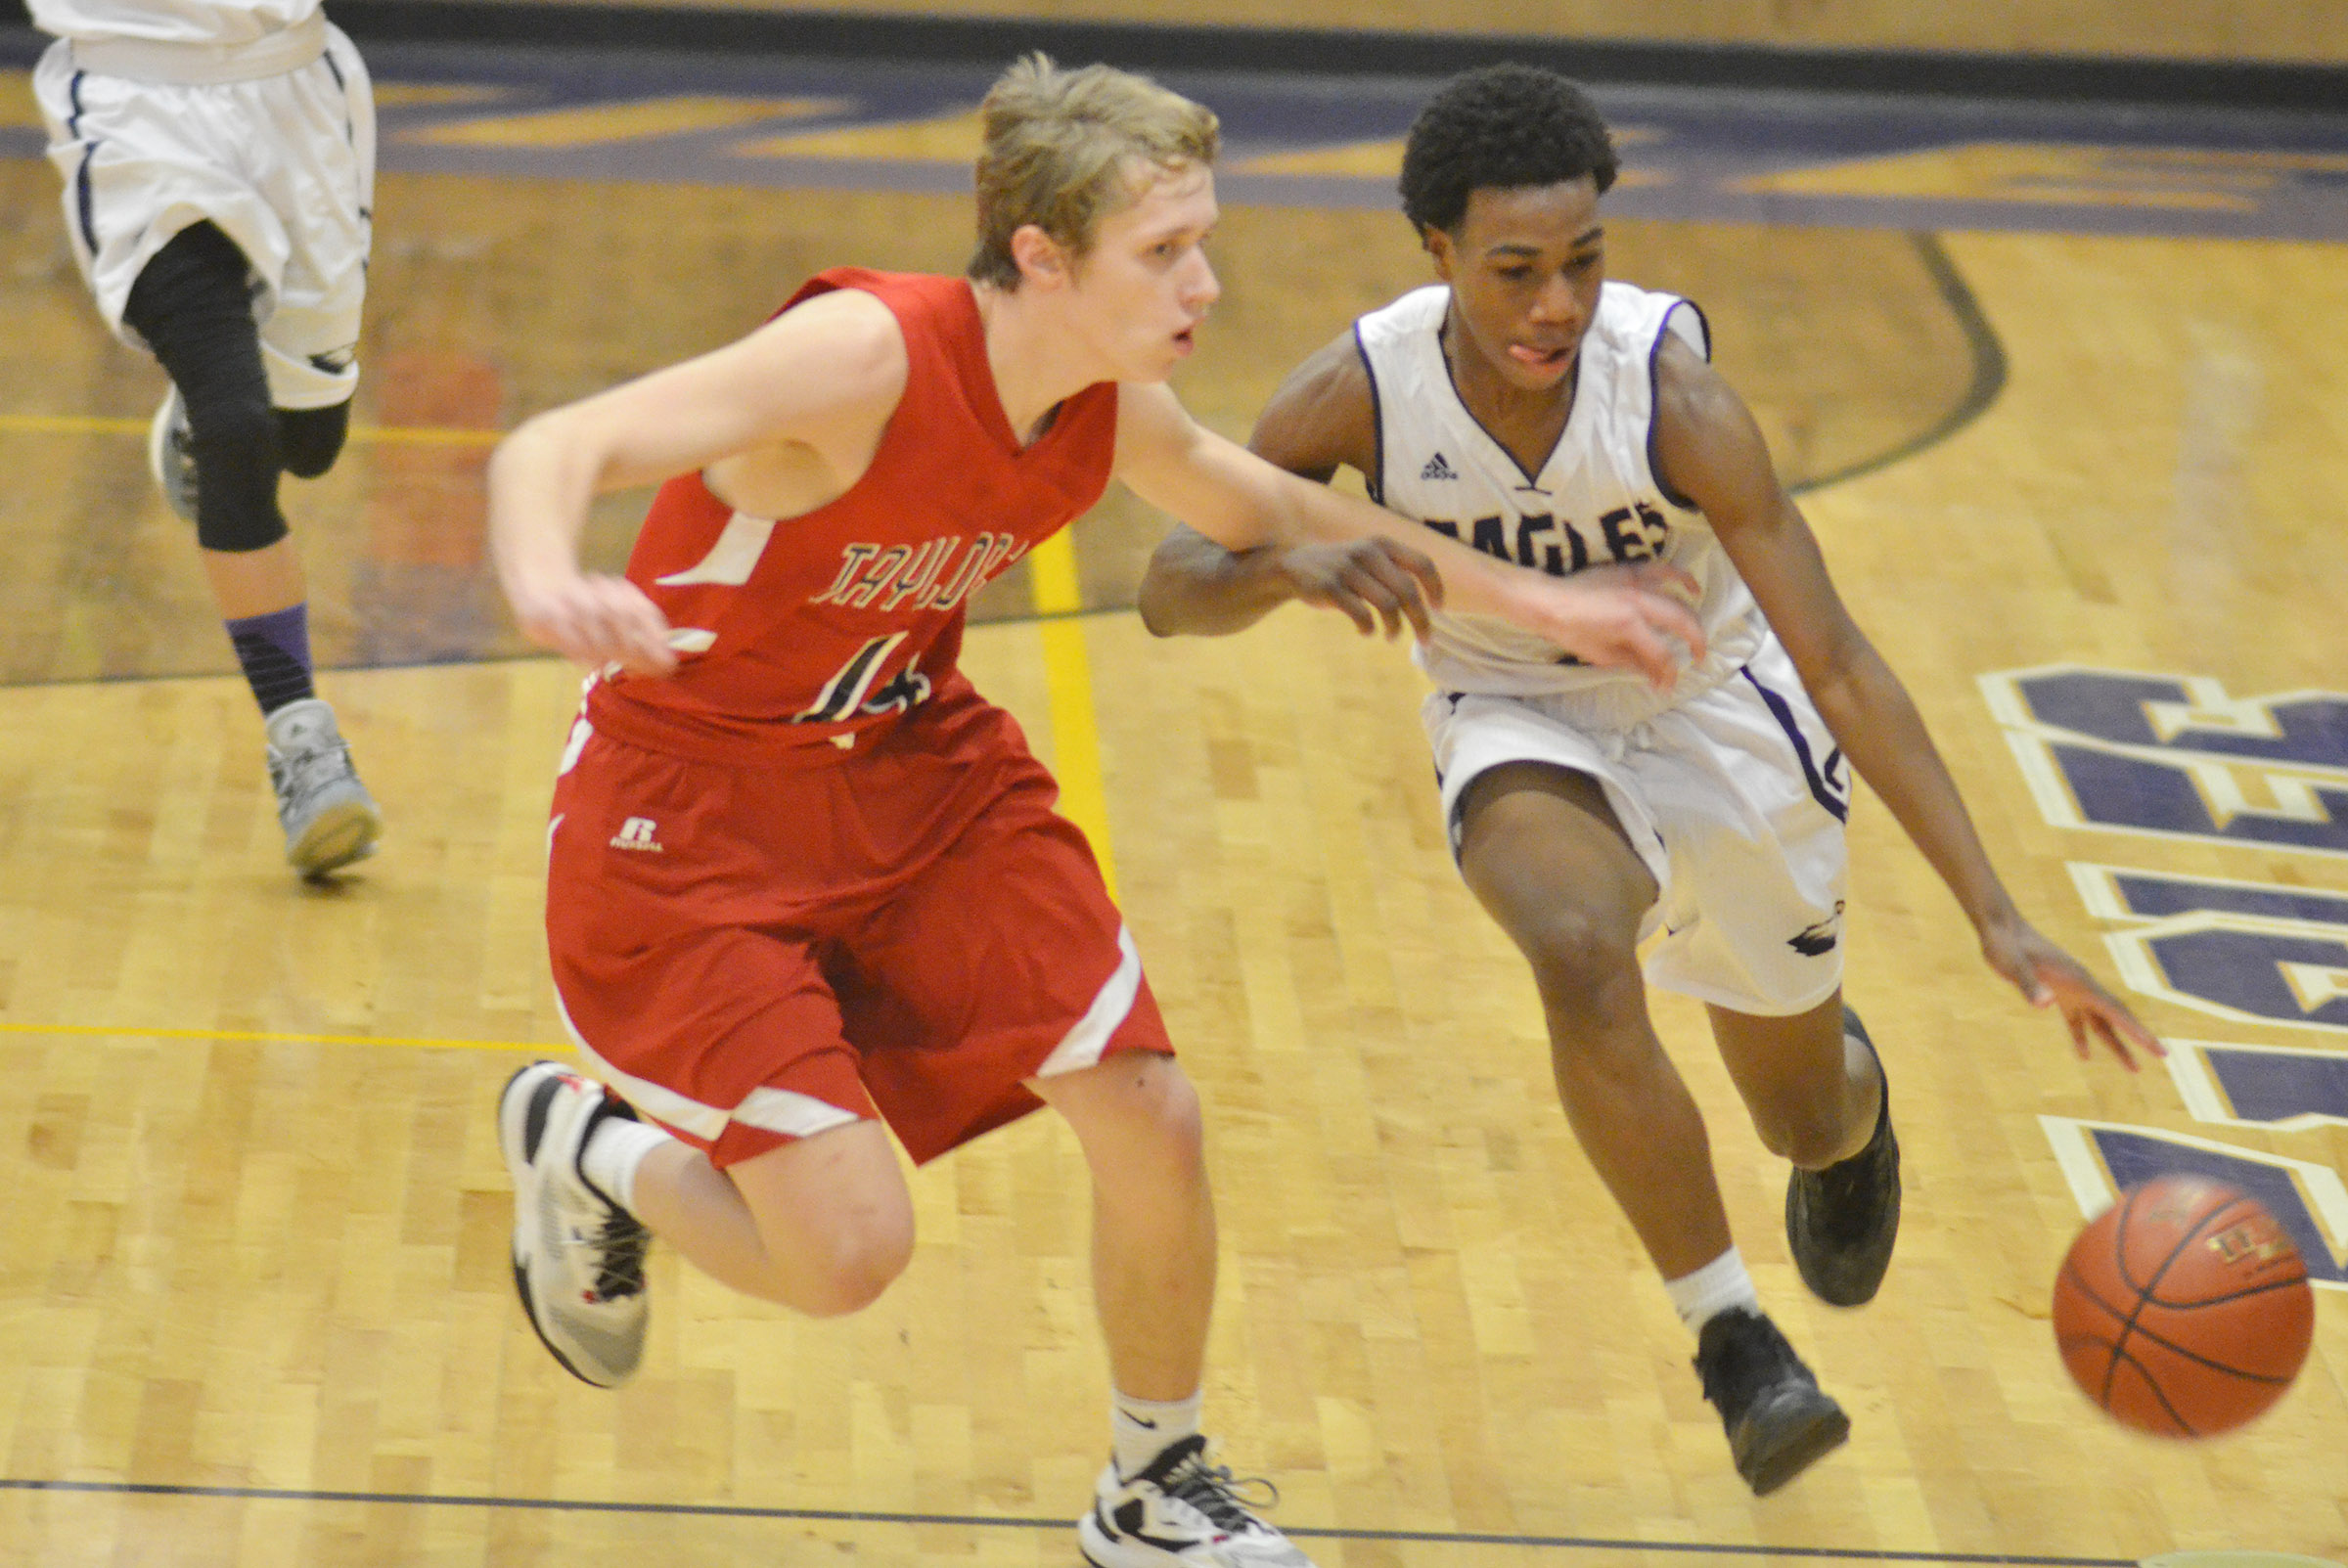 CHS freshman Malachi Corley dribbles to the basket.